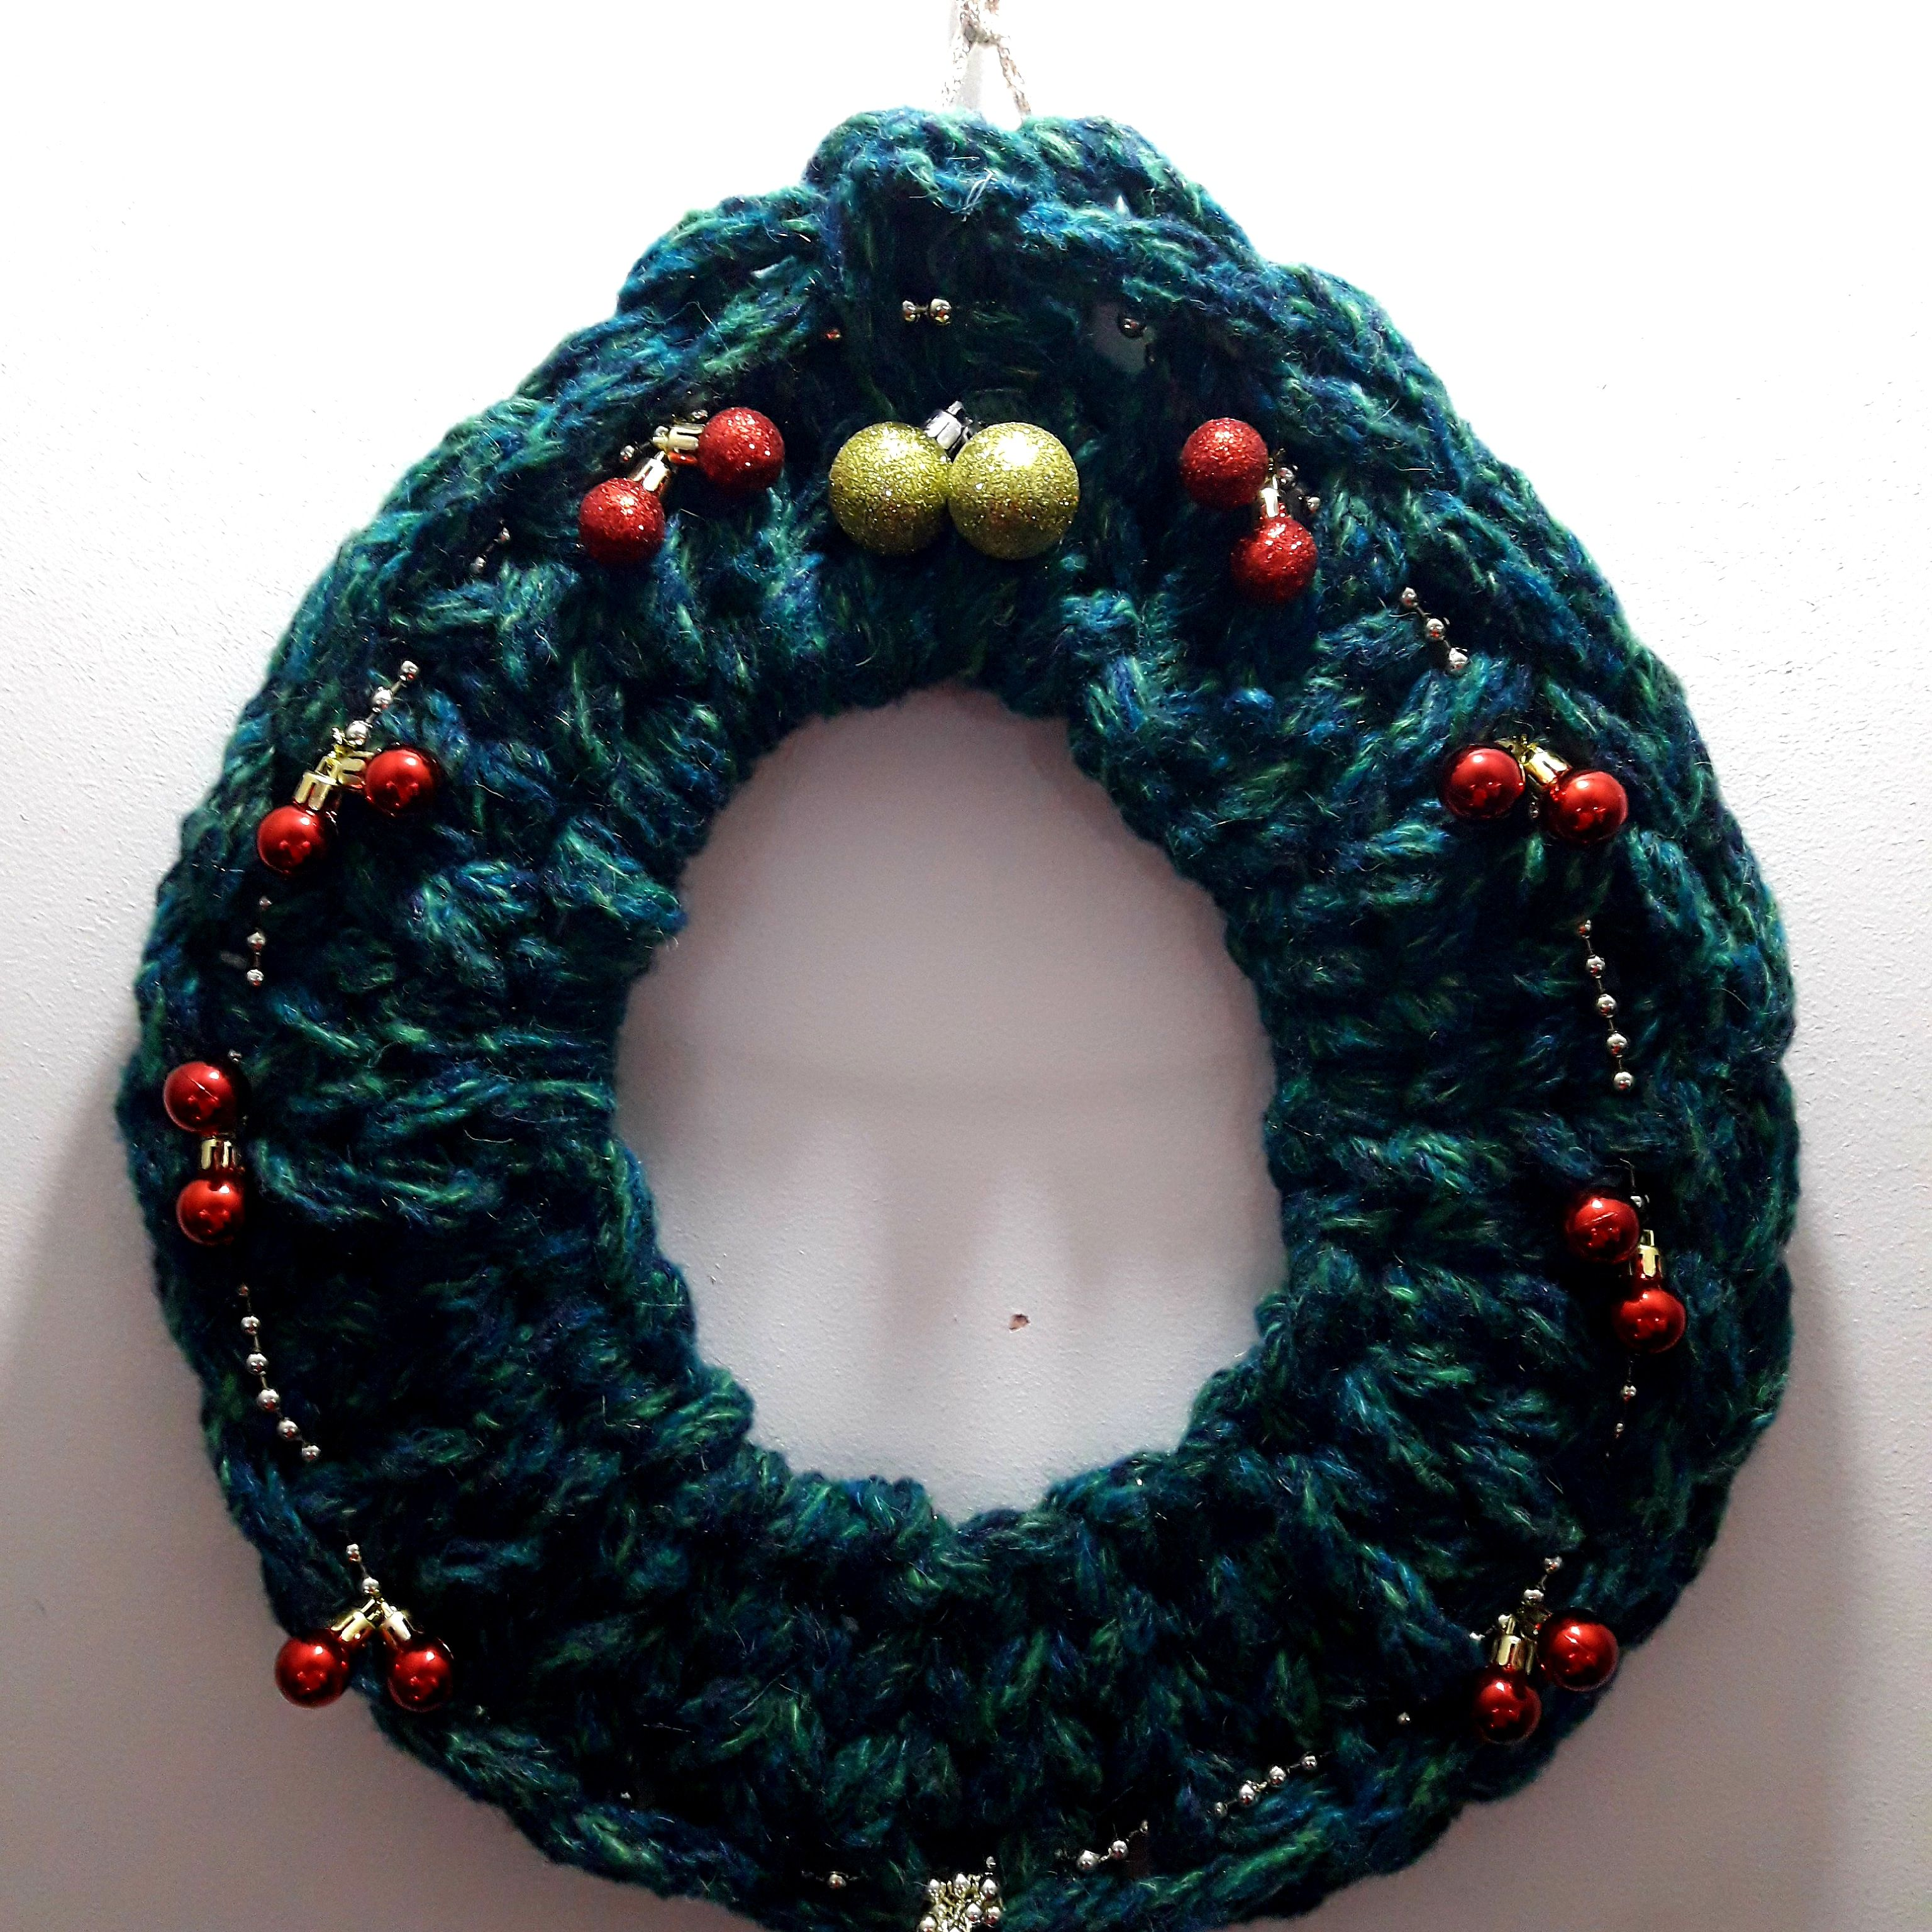 Fingers Knitted Christmas Wreath